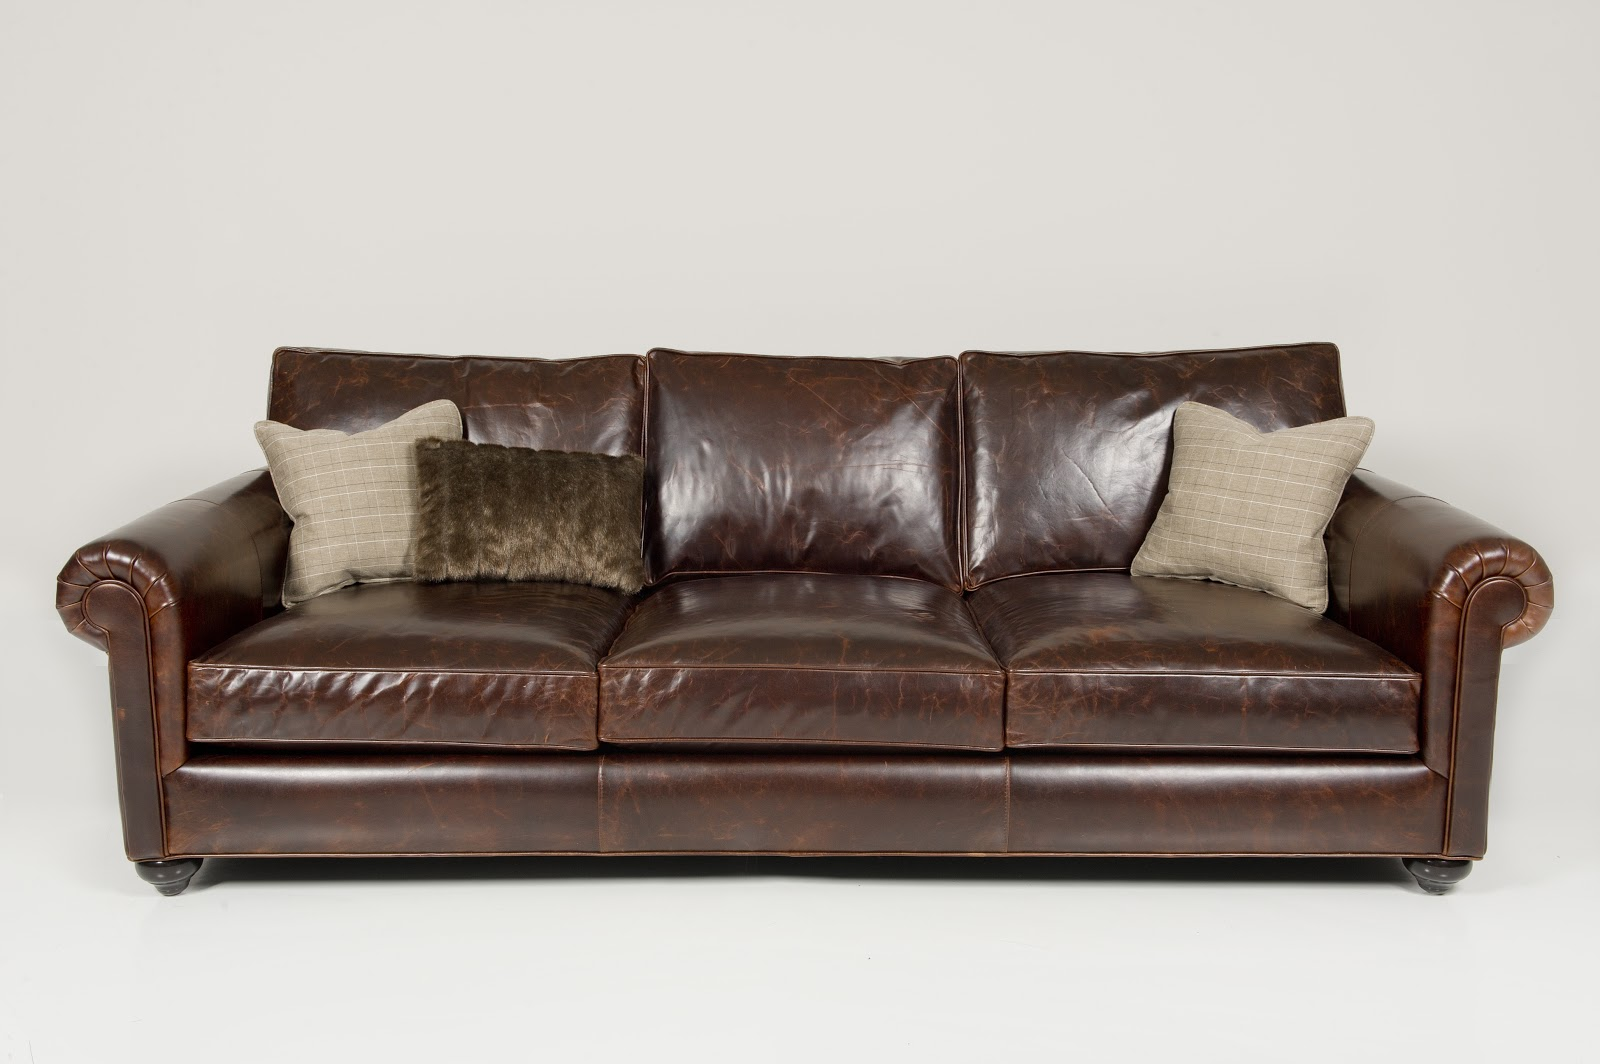 dwellstudio chester sofa modernform bed rousseau 39s fine furniture and decor favourite seats in